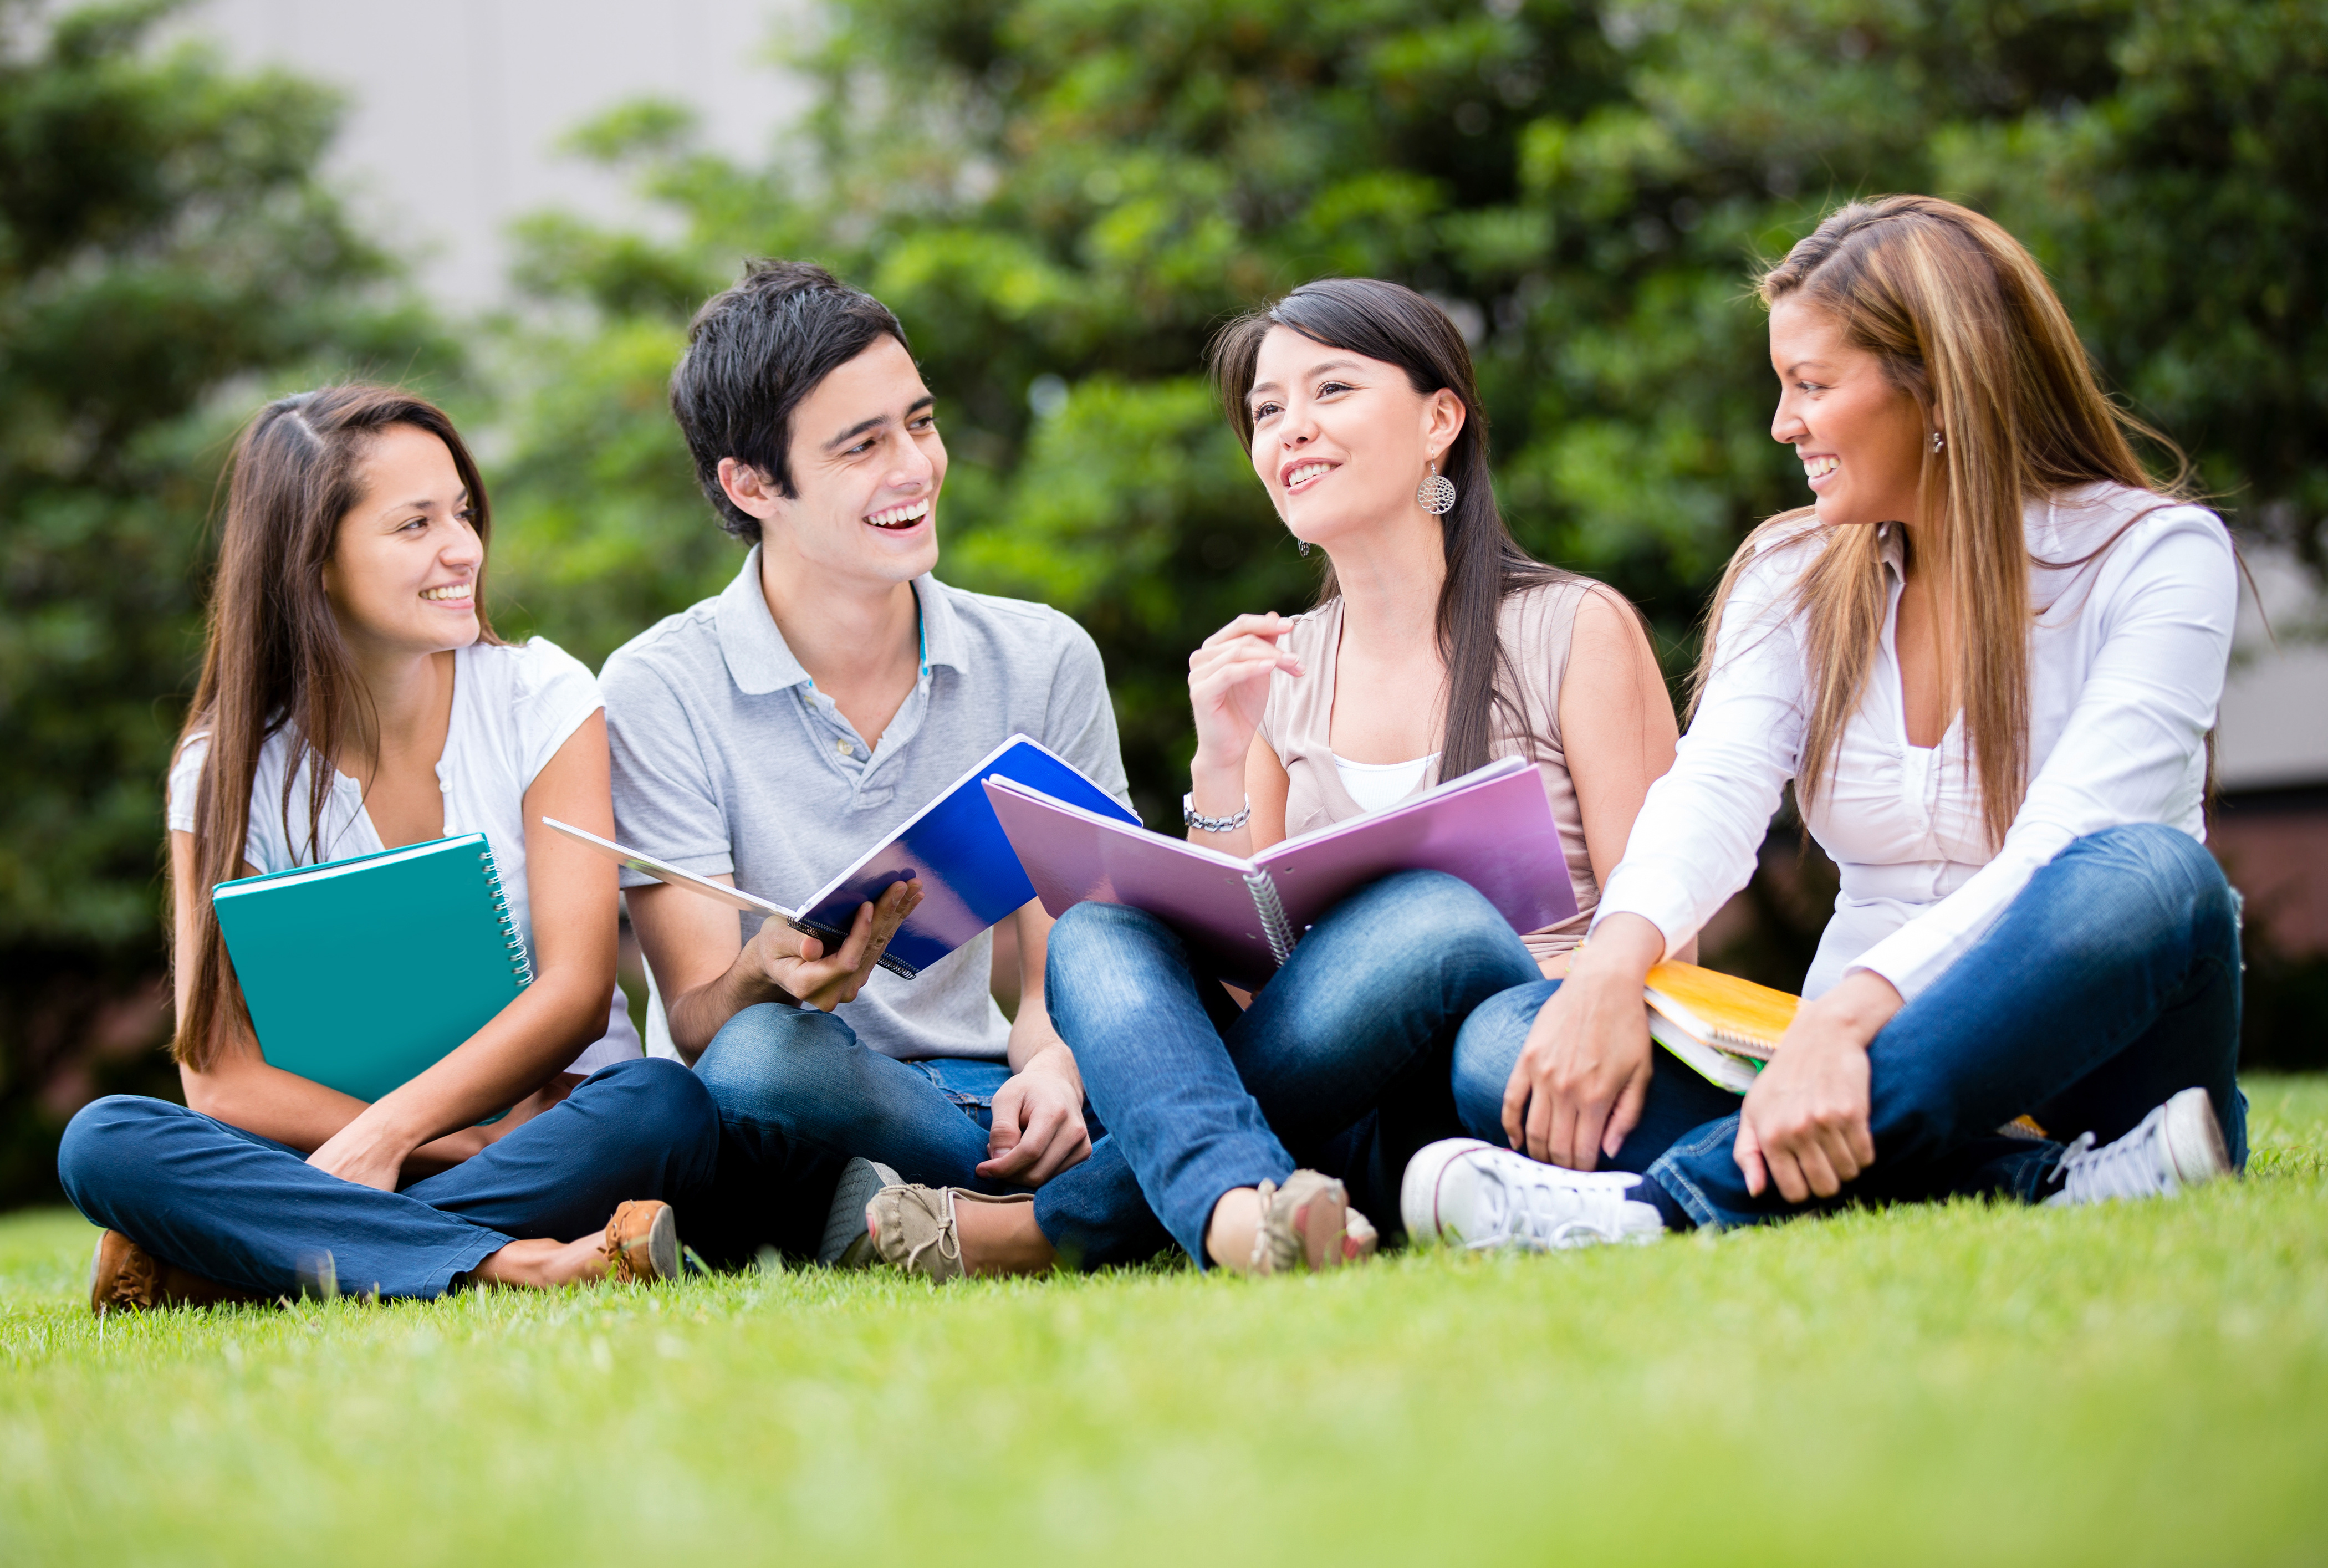 students etiquette in university Netiquette refers to the social expectations and behavior norms for online interactions and communications in the online learning environment, we should follow common social standards in the online learning environment, we should follow common social standards.